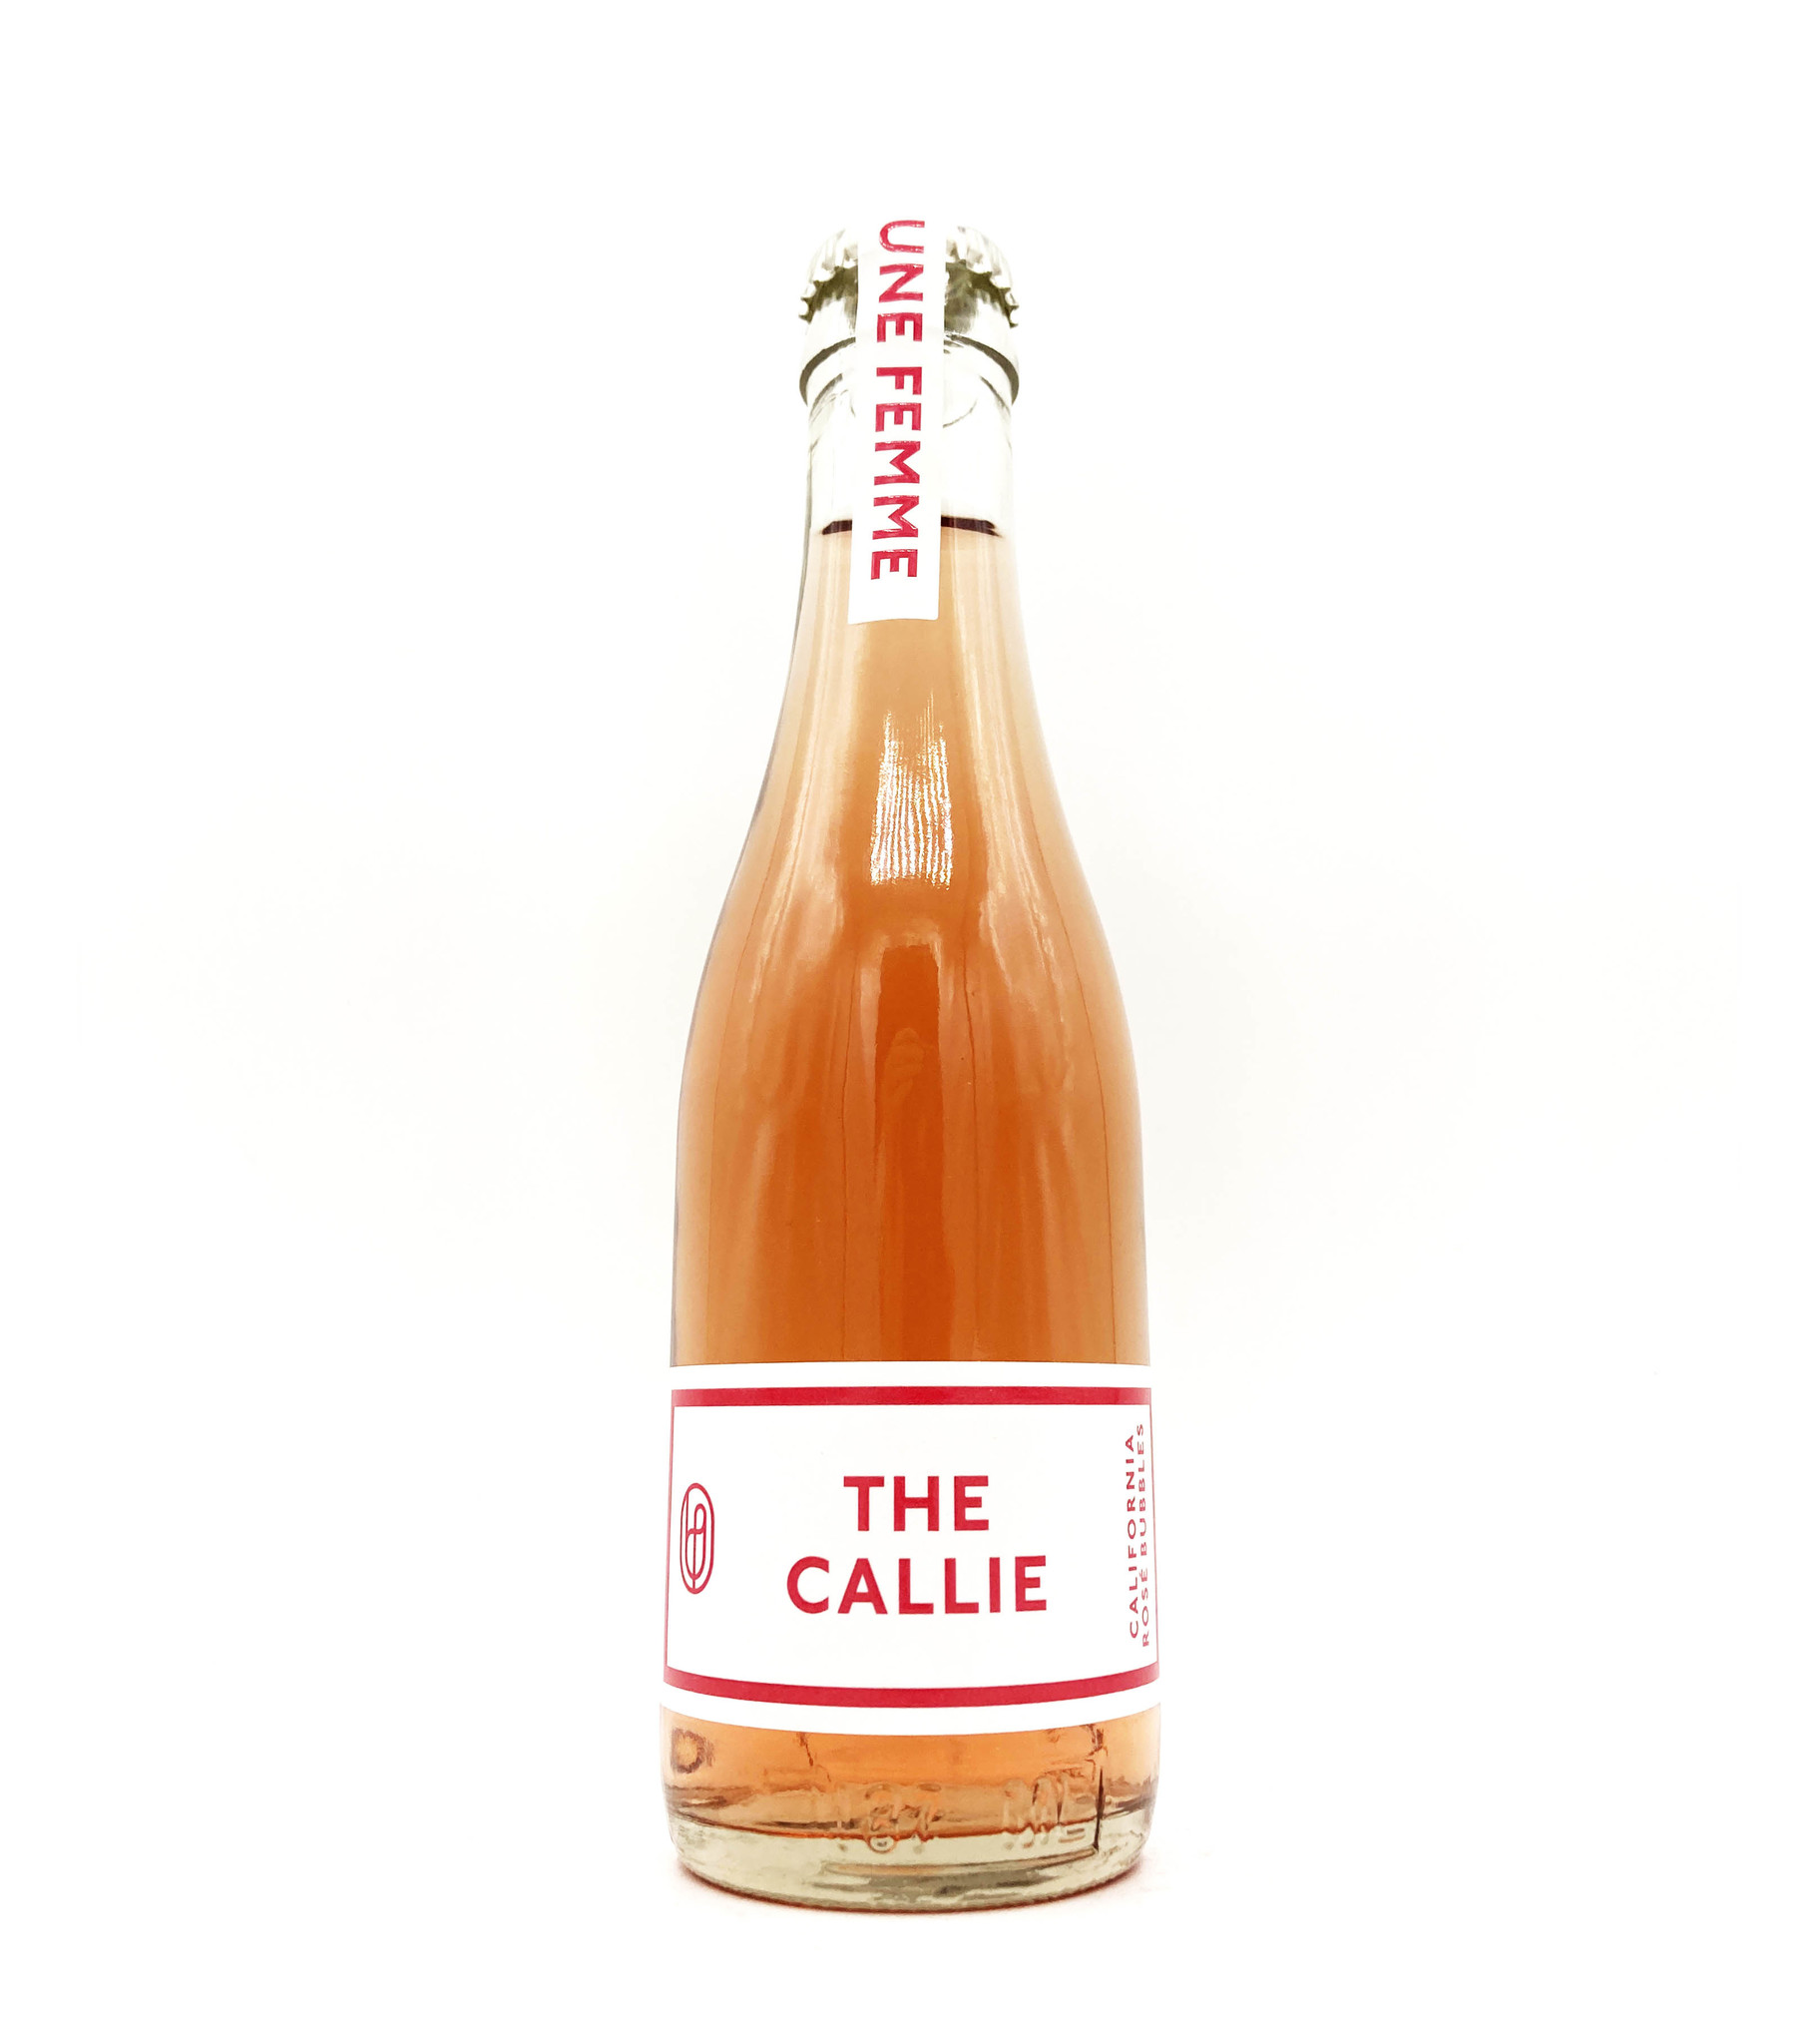 Sparkling Rosé The Callie NV 187ml Une Femme